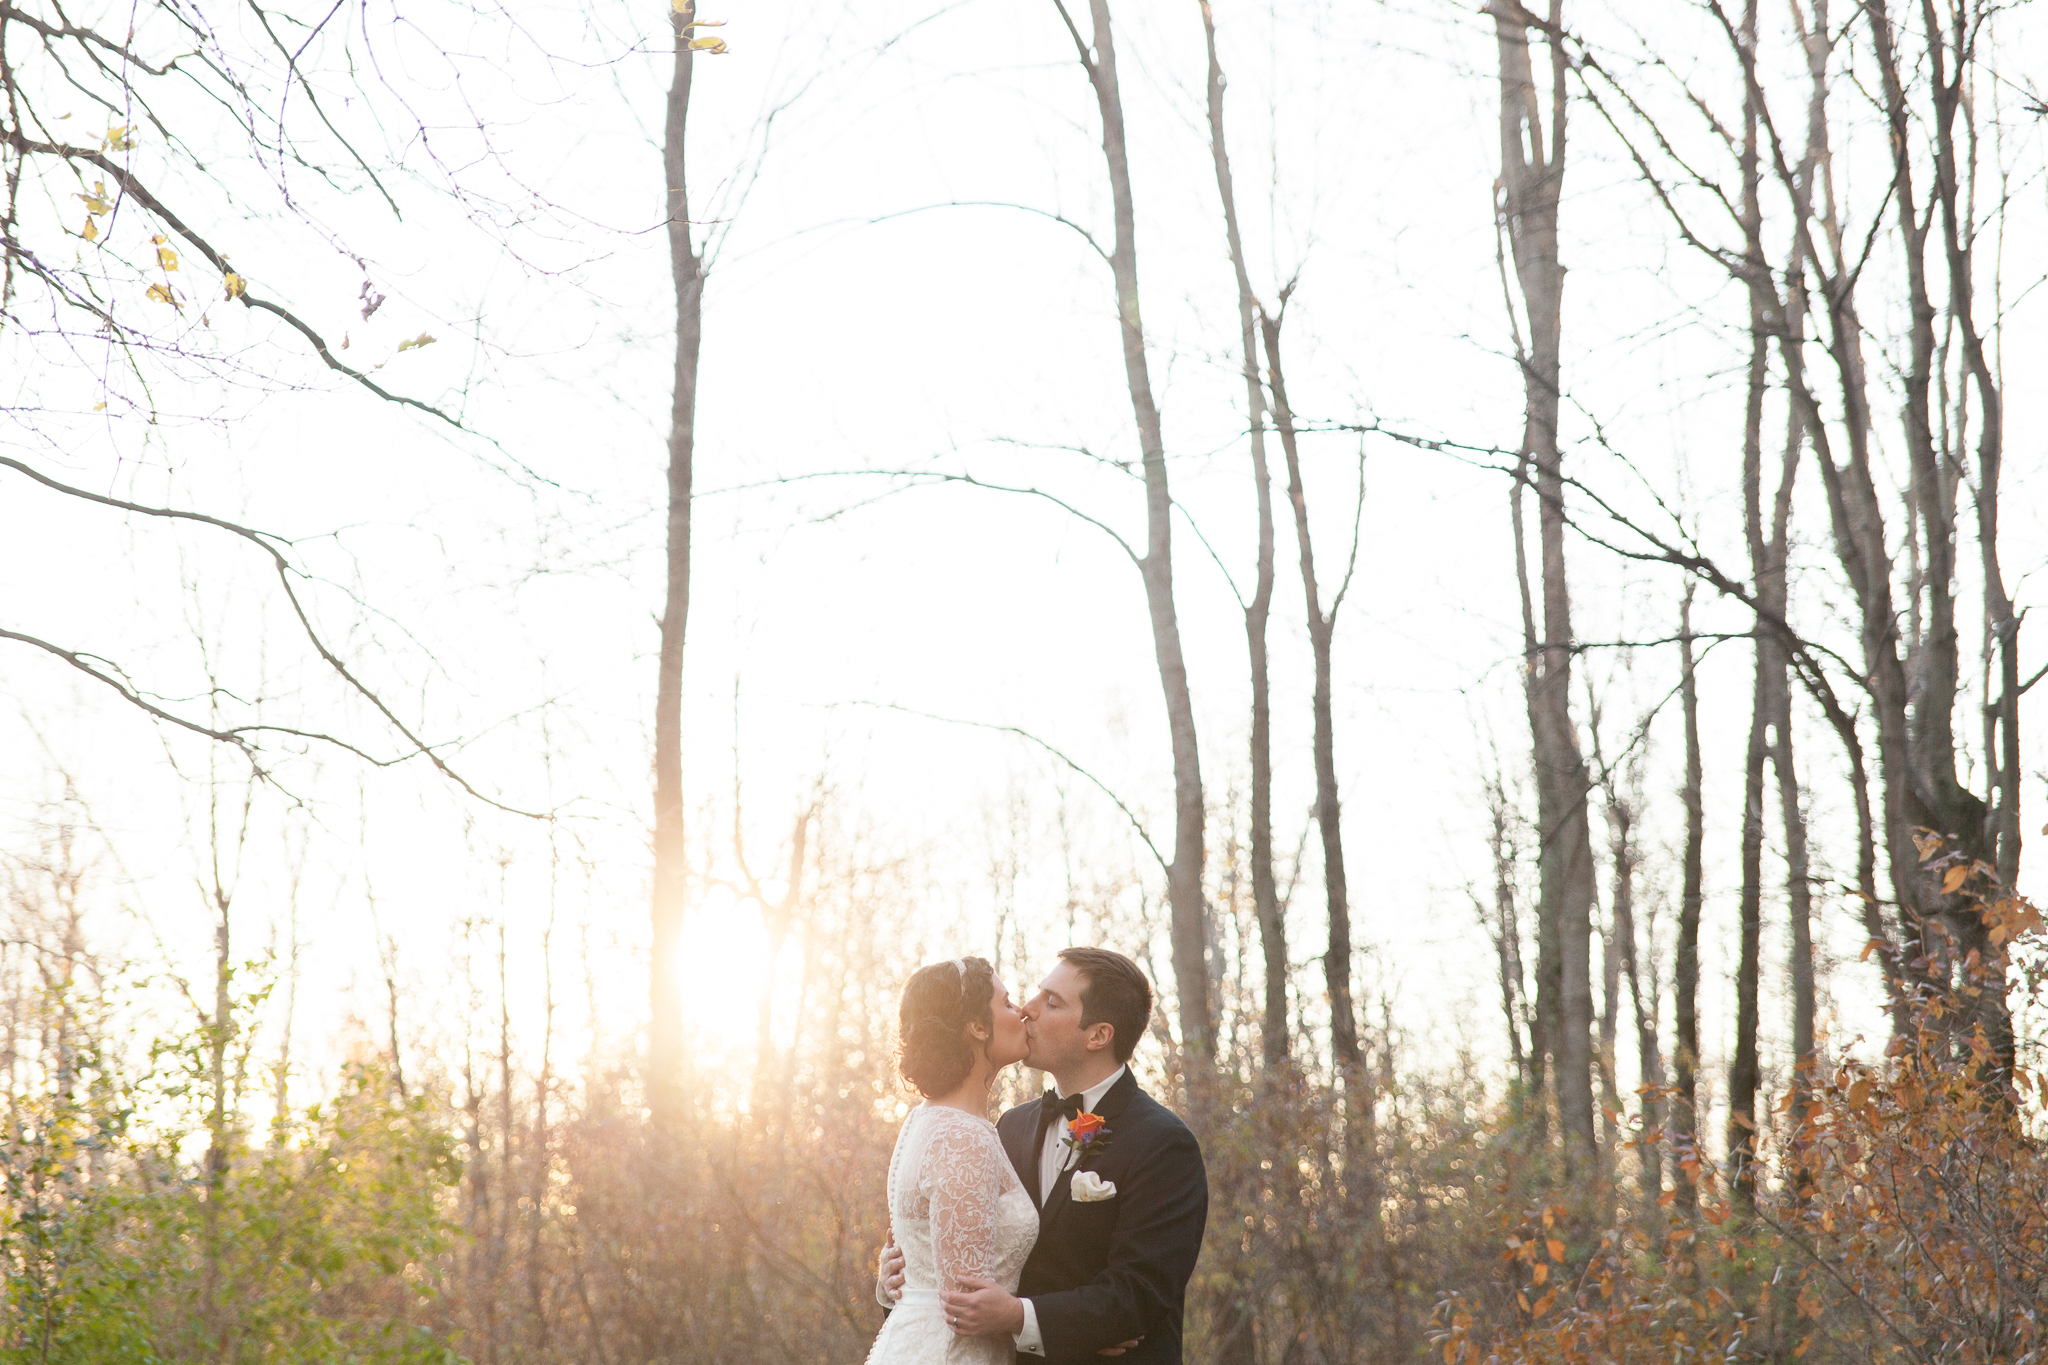 camuglia-whomstudio-chelsea_and_andy-nycphotographer-wedding-brooklyn-buffalo-timberlodge-055-0454.jpg